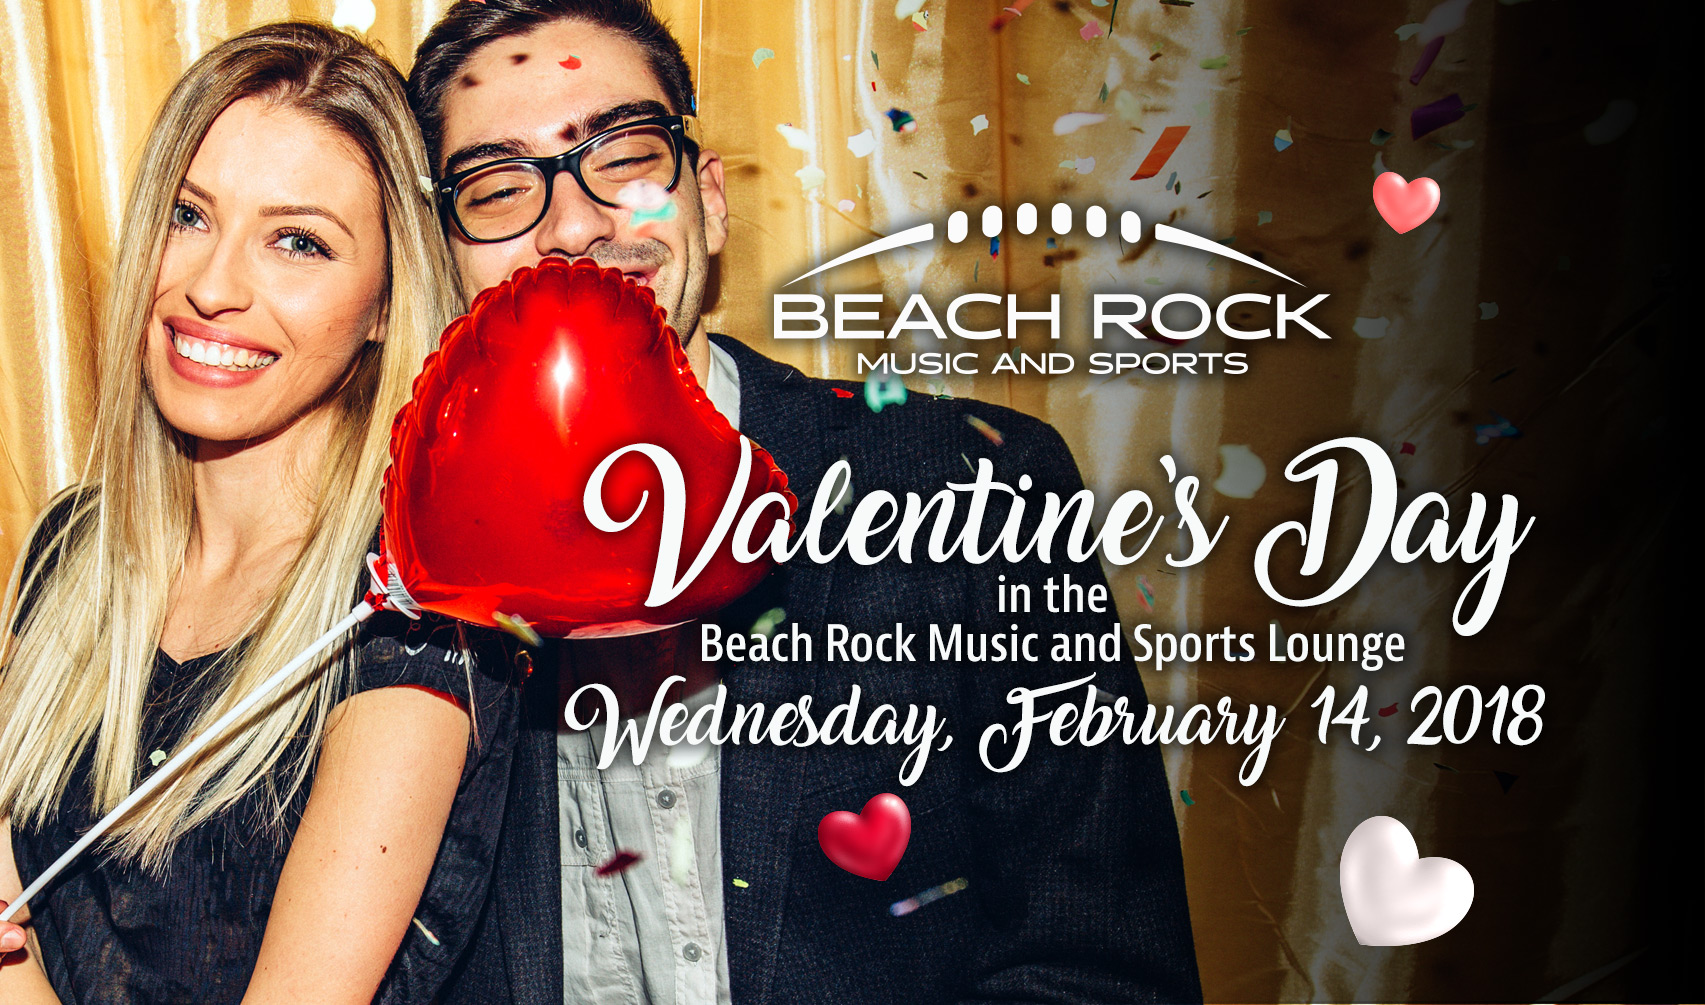 VALENTINE'S DAY IN THE BEACH ROCK MUSIC AND SPORTS LOUNGE